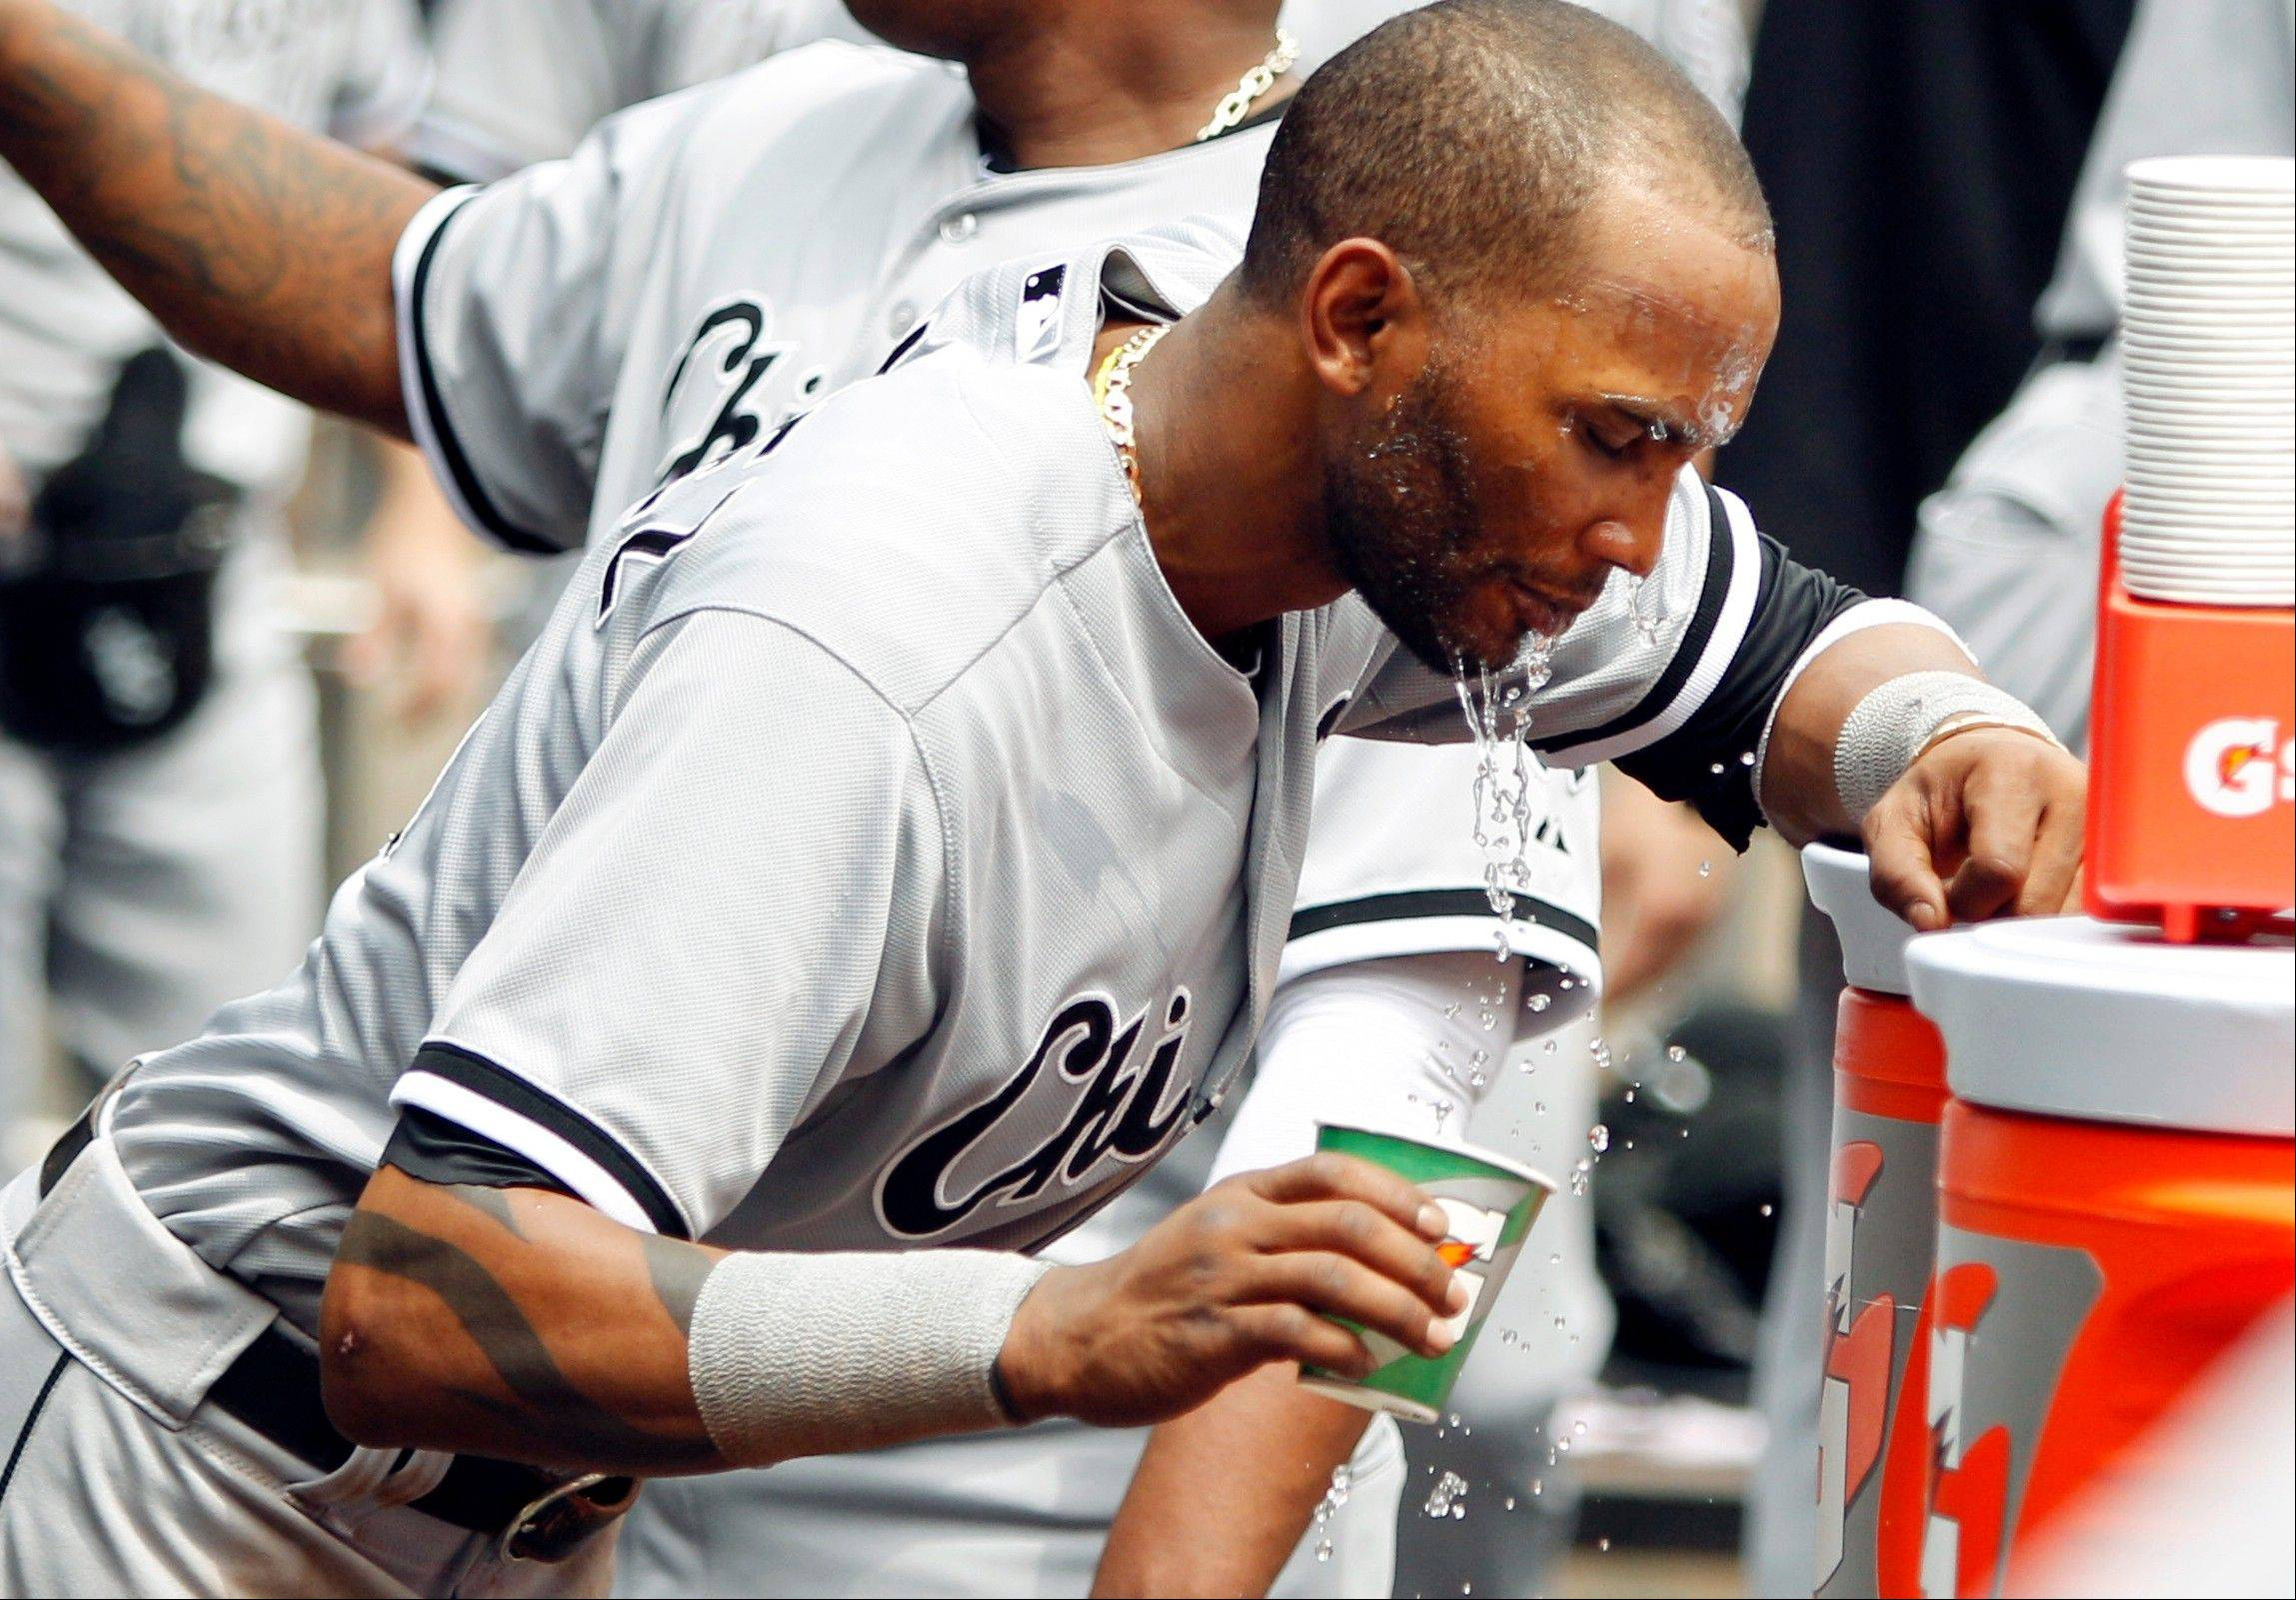 These are not the best of times for White Sox shortstop Alexei Ramirez.